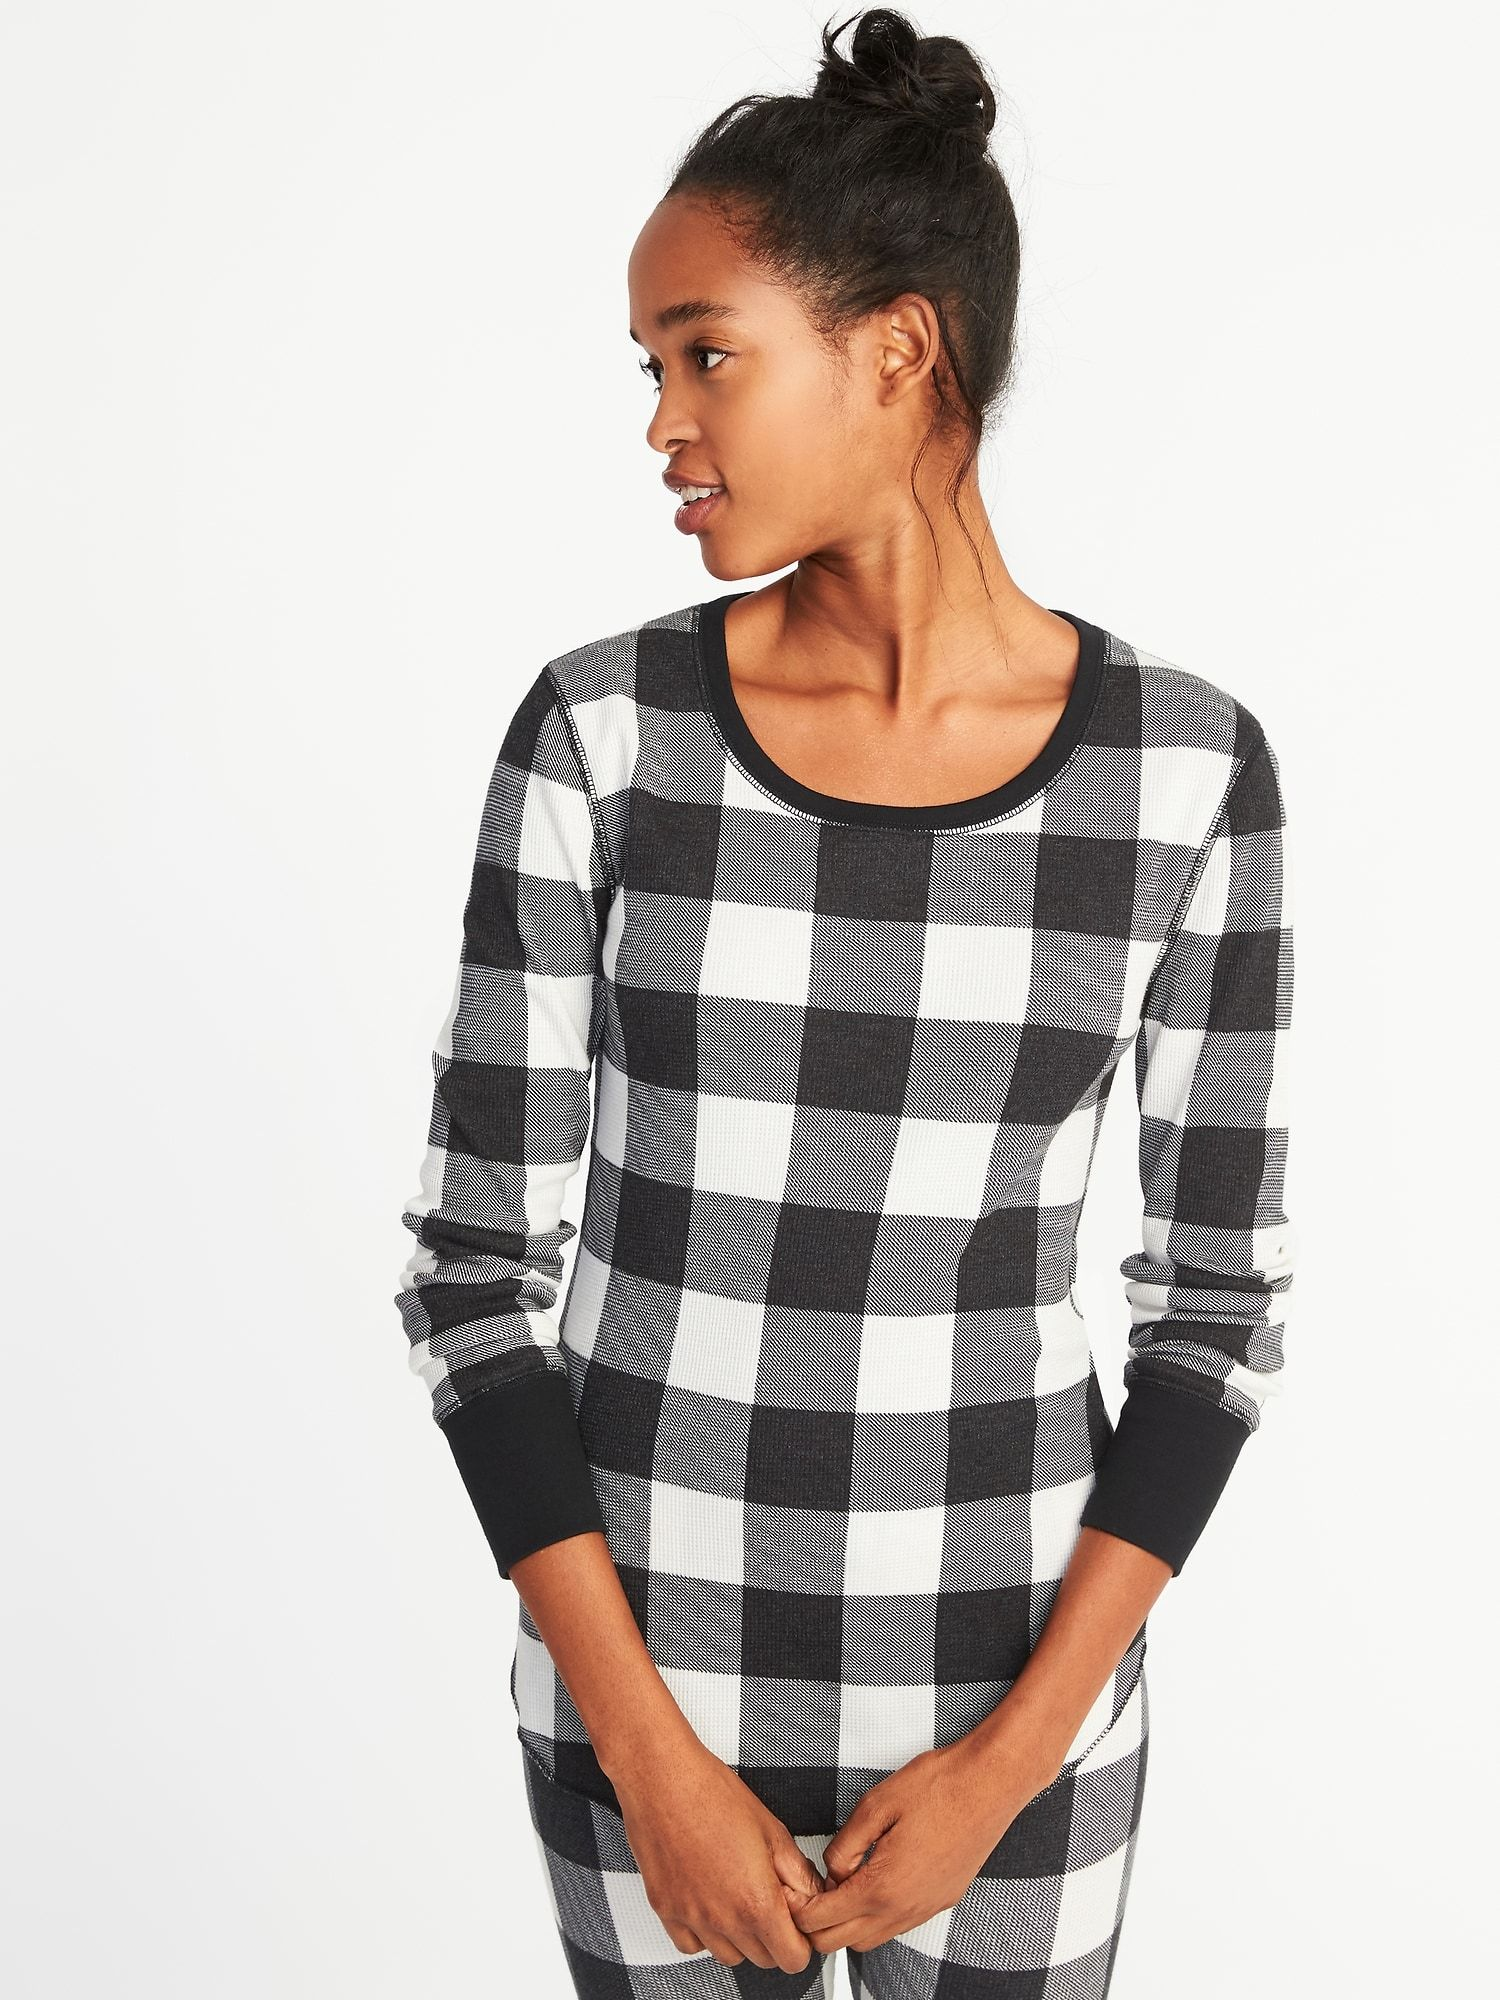 Fitted Thermal Tee for Women Old Navy Tees for women